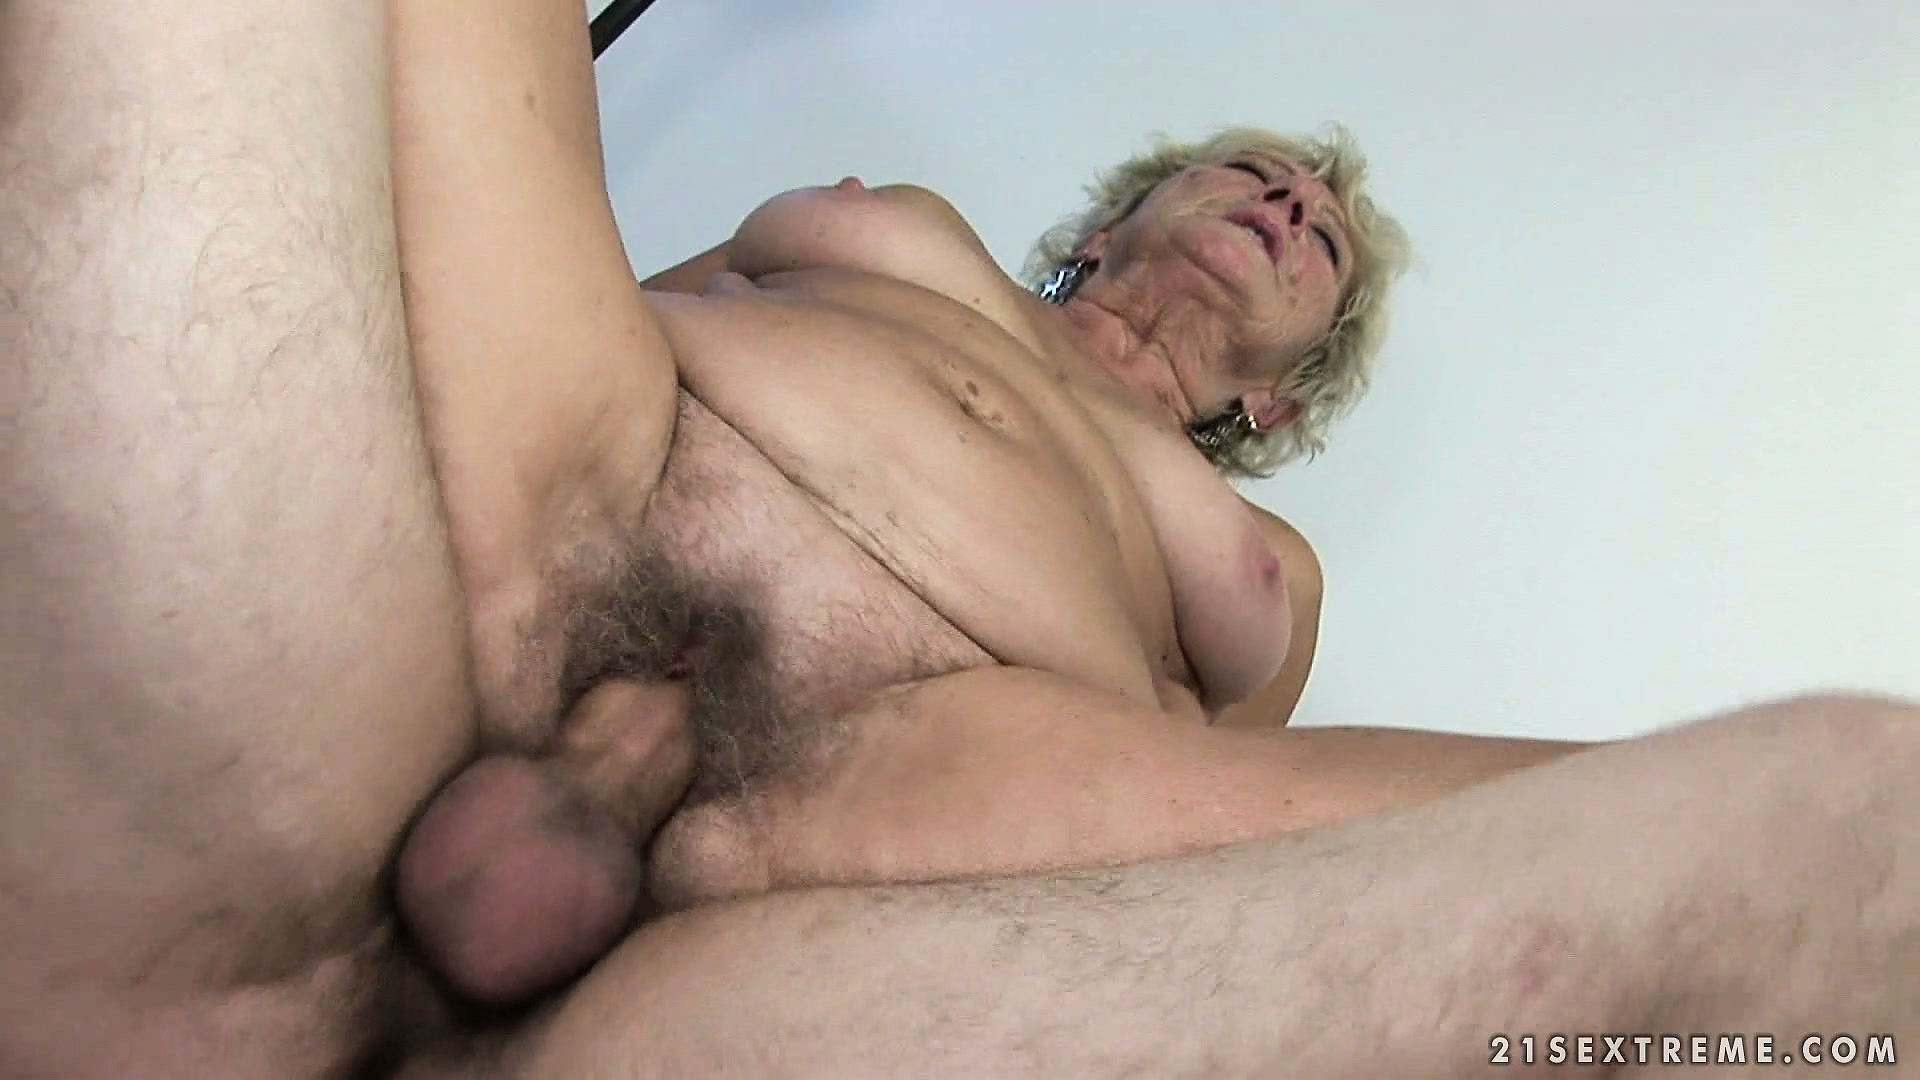 Tranny sleeping fuck video